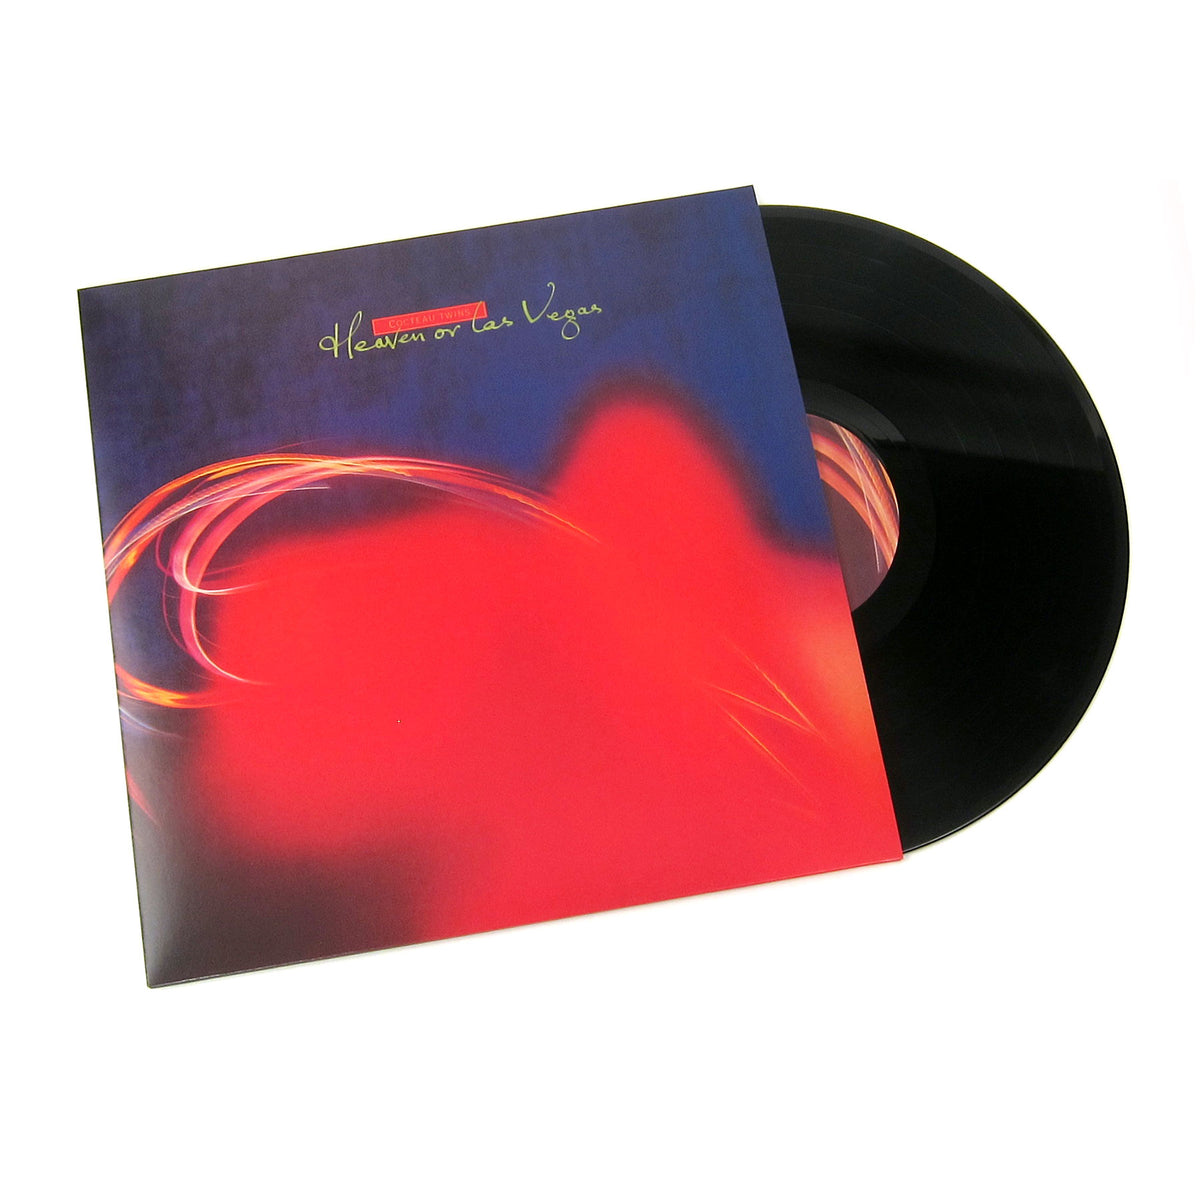 Cocteau Twins: Heaven or Las Vegas (180g) Vinyl LP